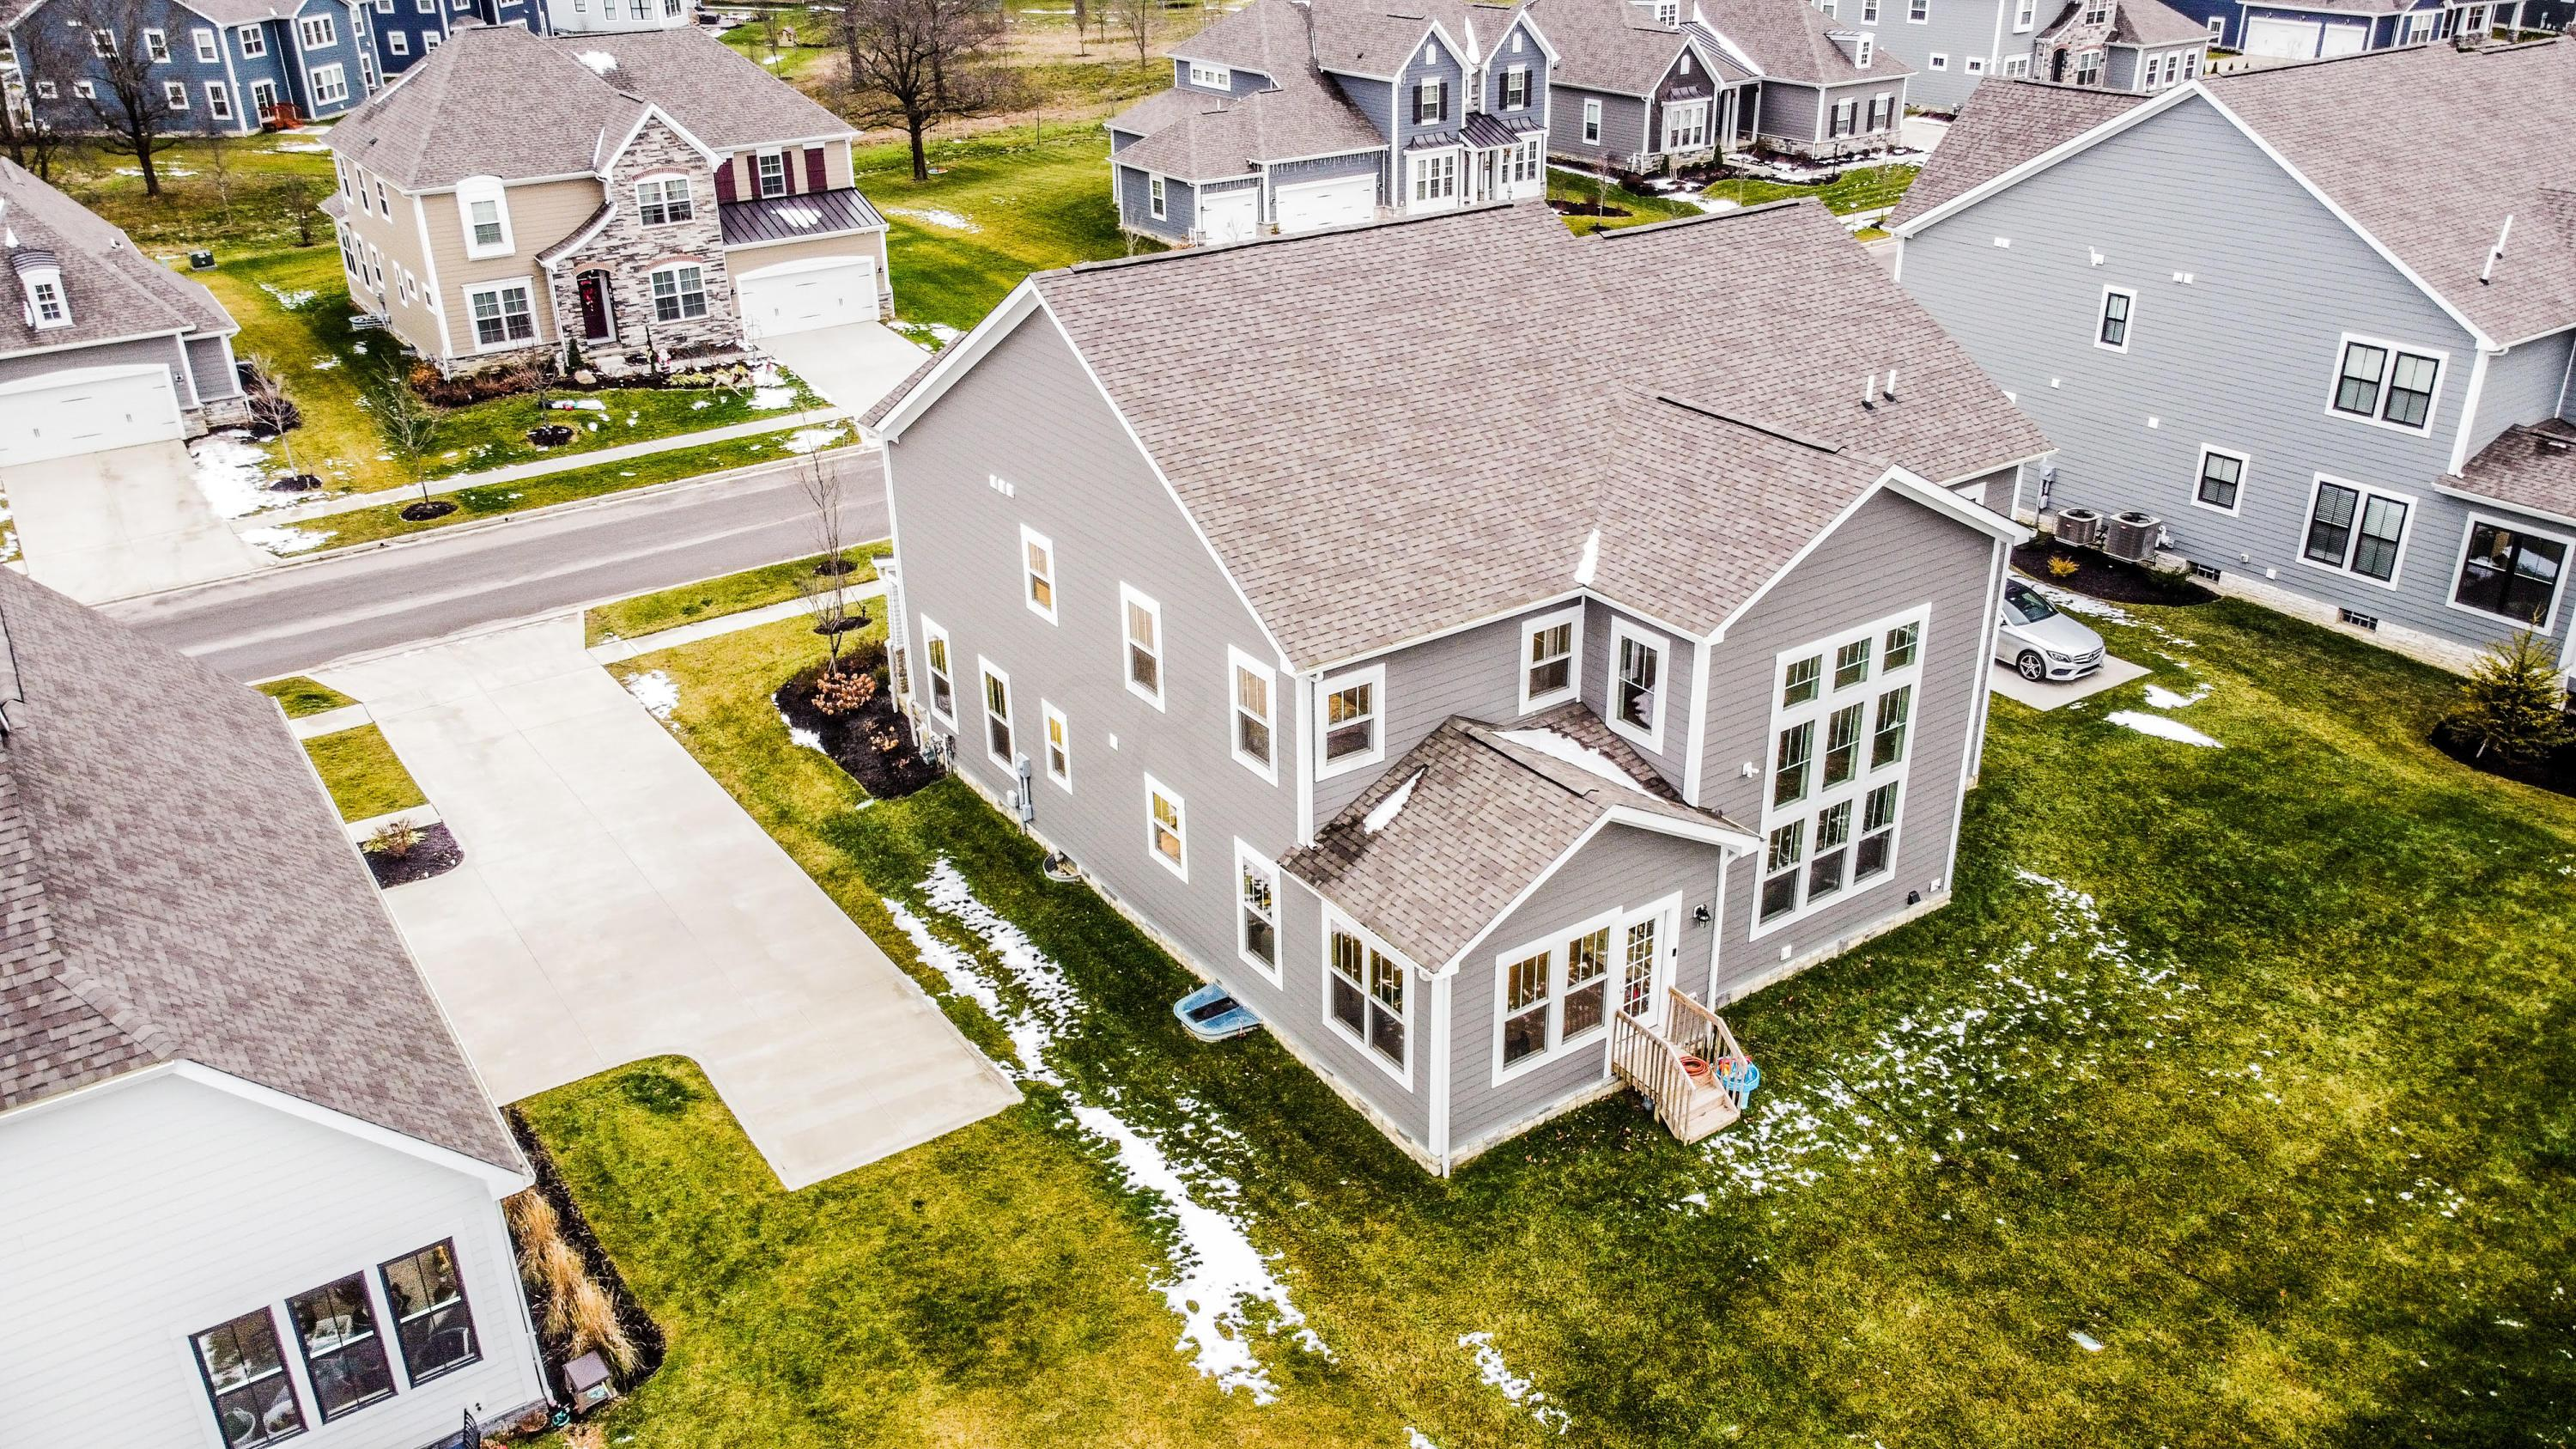 8278 Timble Falls Drive, Dublin, Ohio 43016, 5 Bedrooms Bedrooms, ,5 BathroomsBathrooms,Residential,For Sale,Timble Falls,220043945